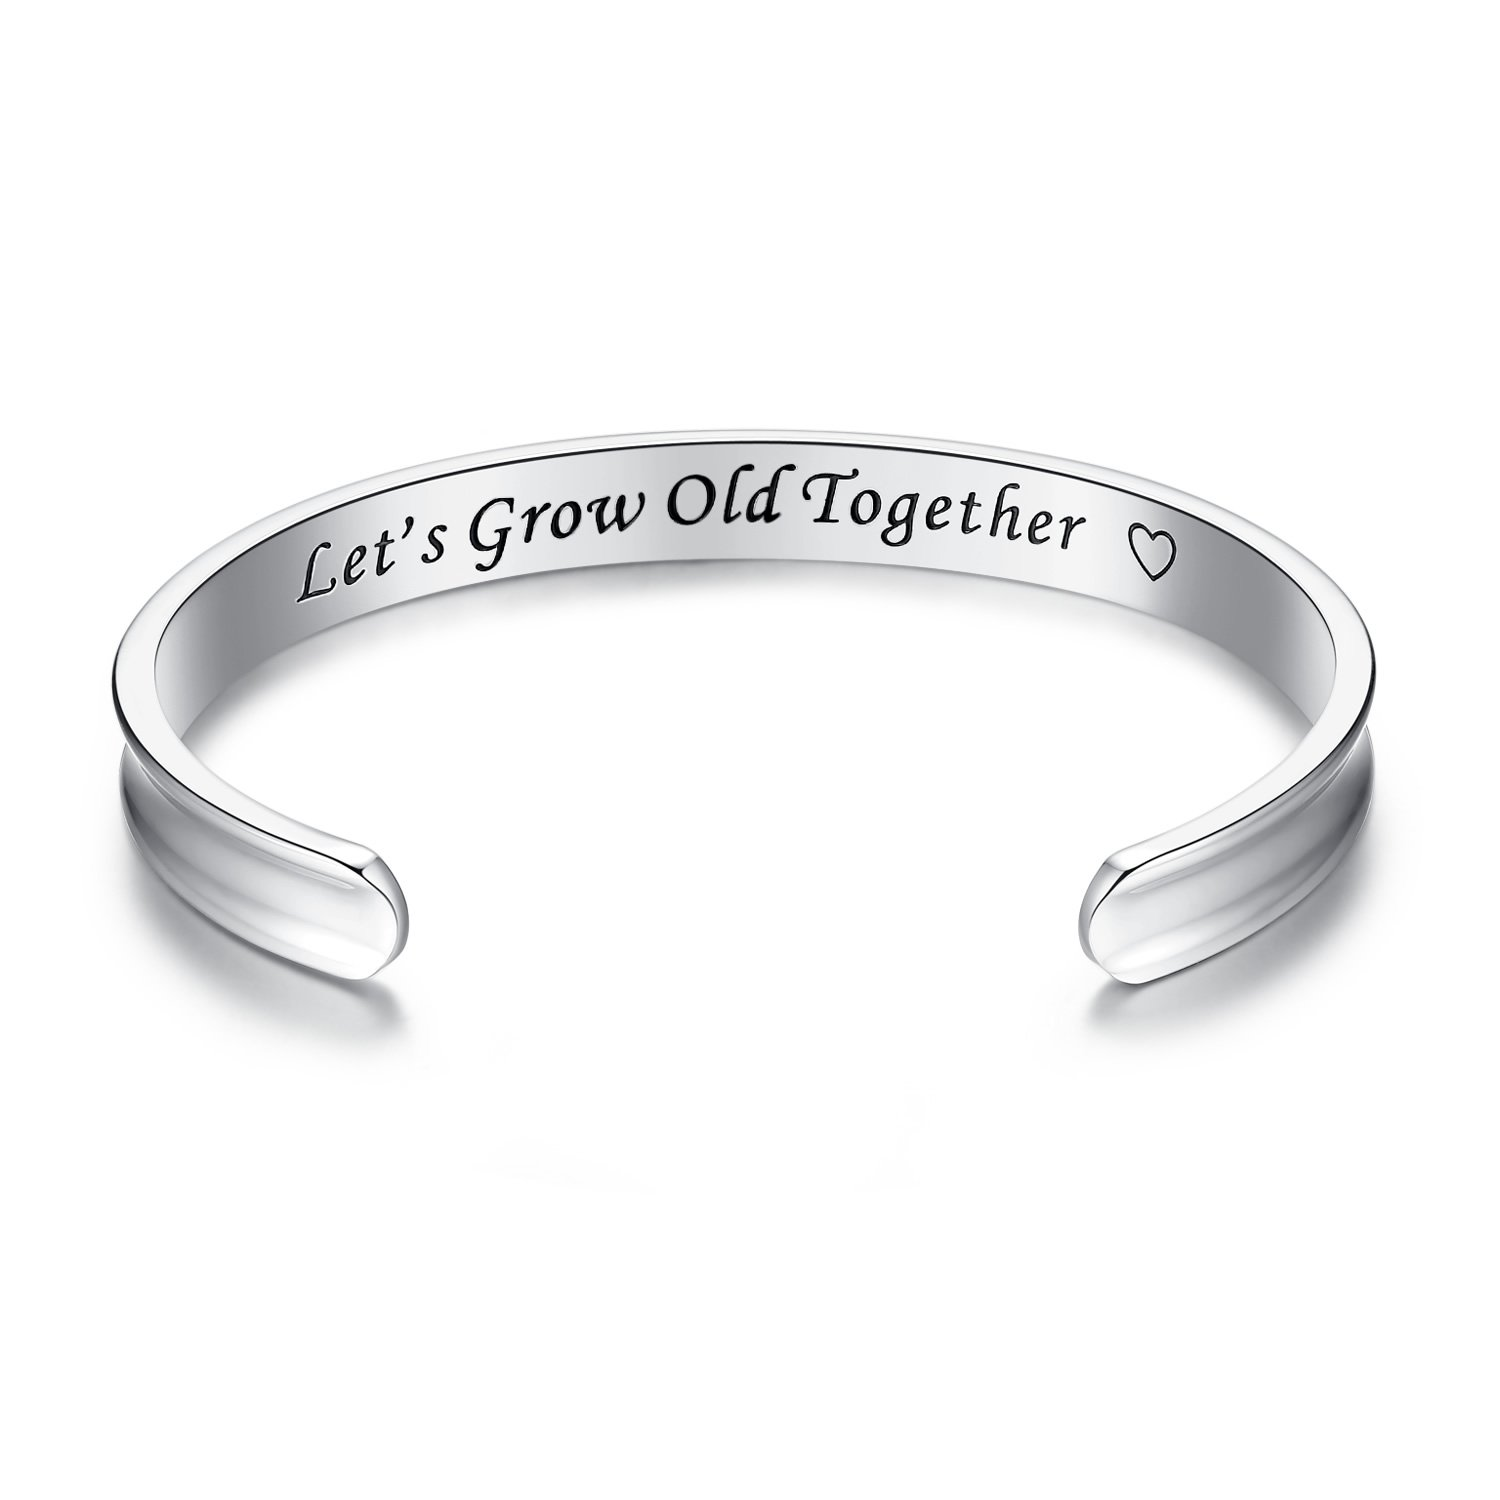 'I love you always and forever' Grooved Cuff Bangle Bracelets, Jewelry for Women, Girls, Wife, Her, Mom Mother Daughter Girlfriend Birthday